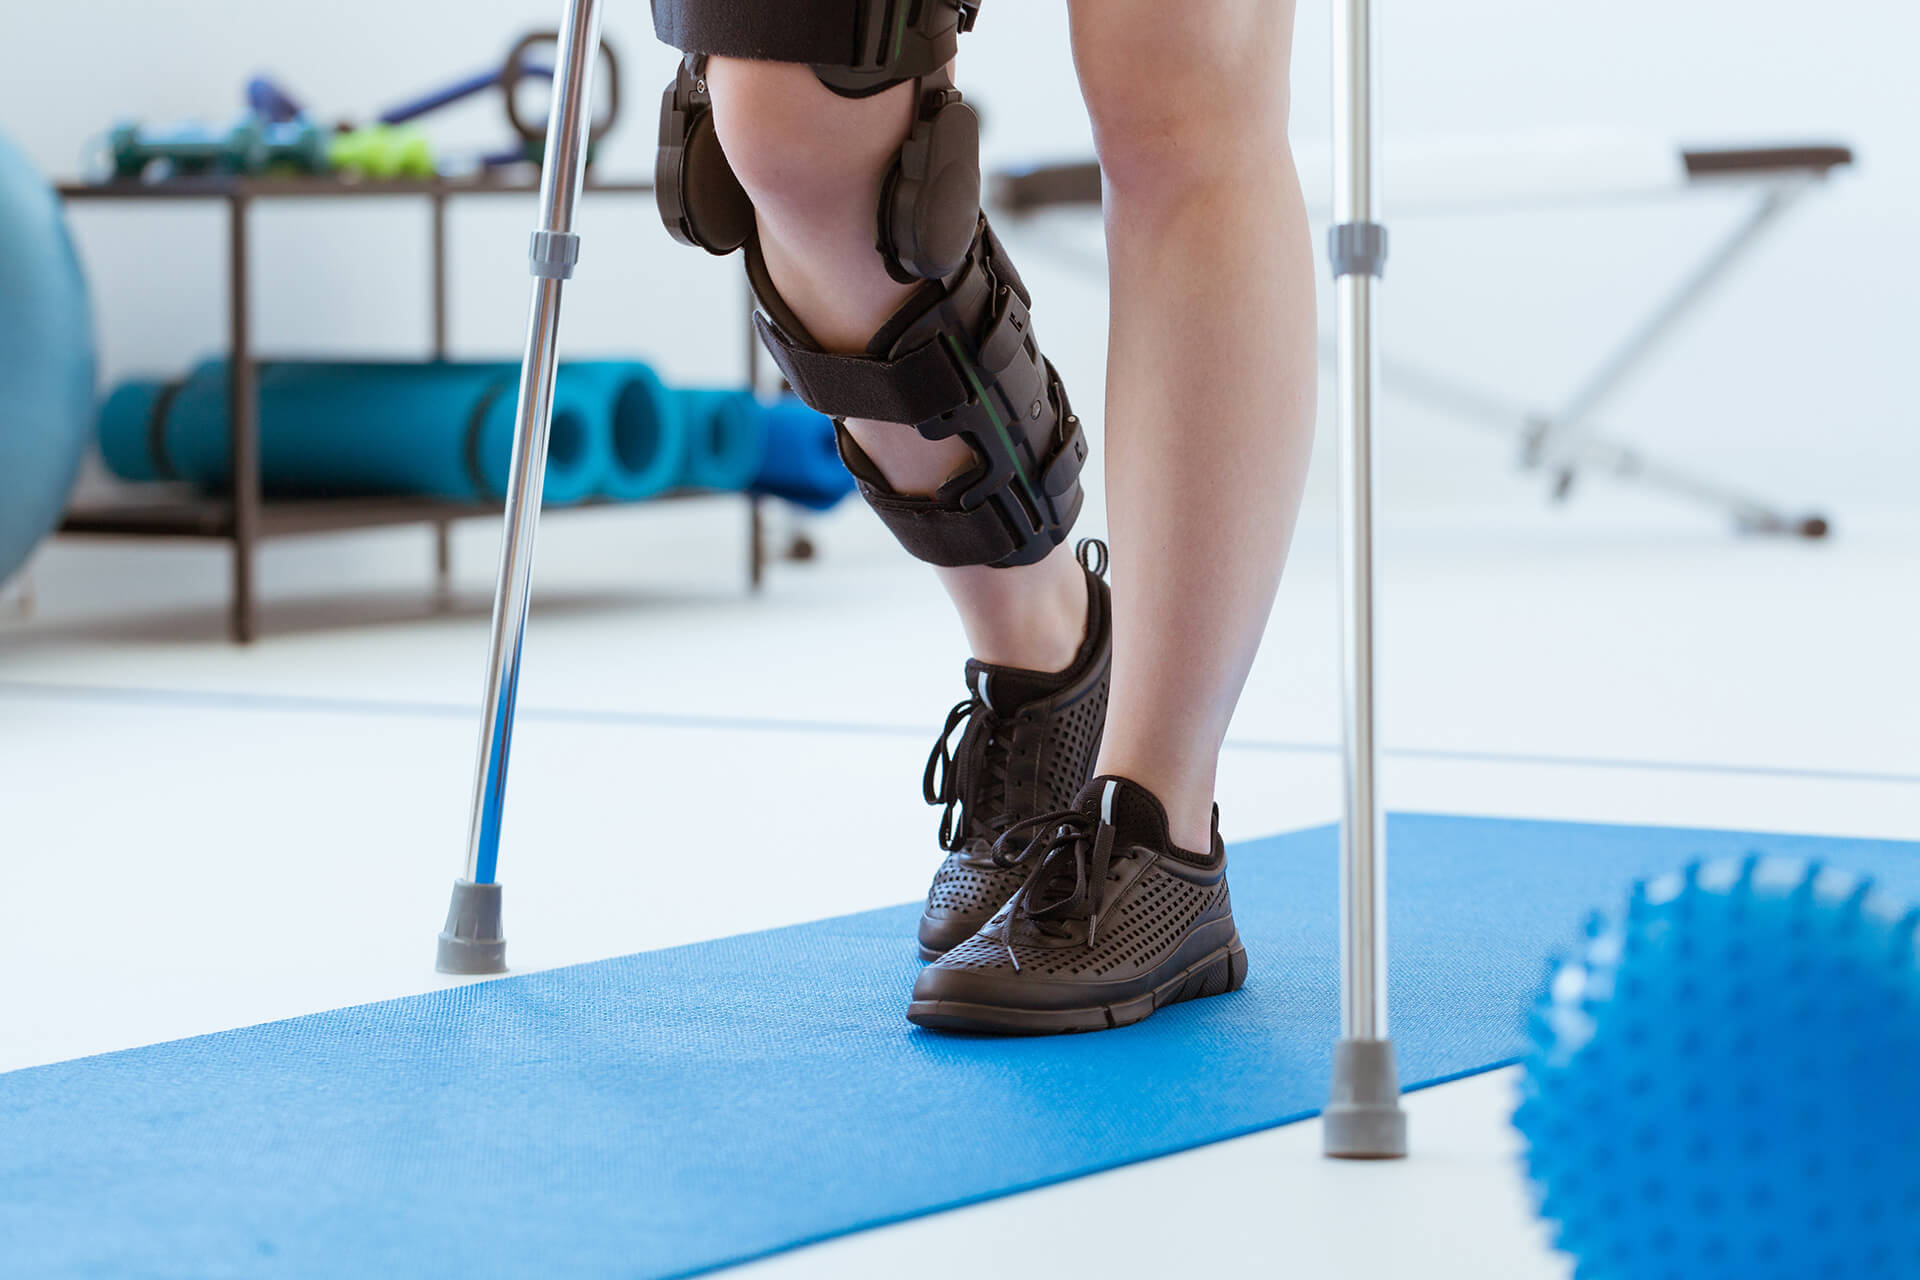 Injured patient in a leg brace exercising on a blue mat in a phy